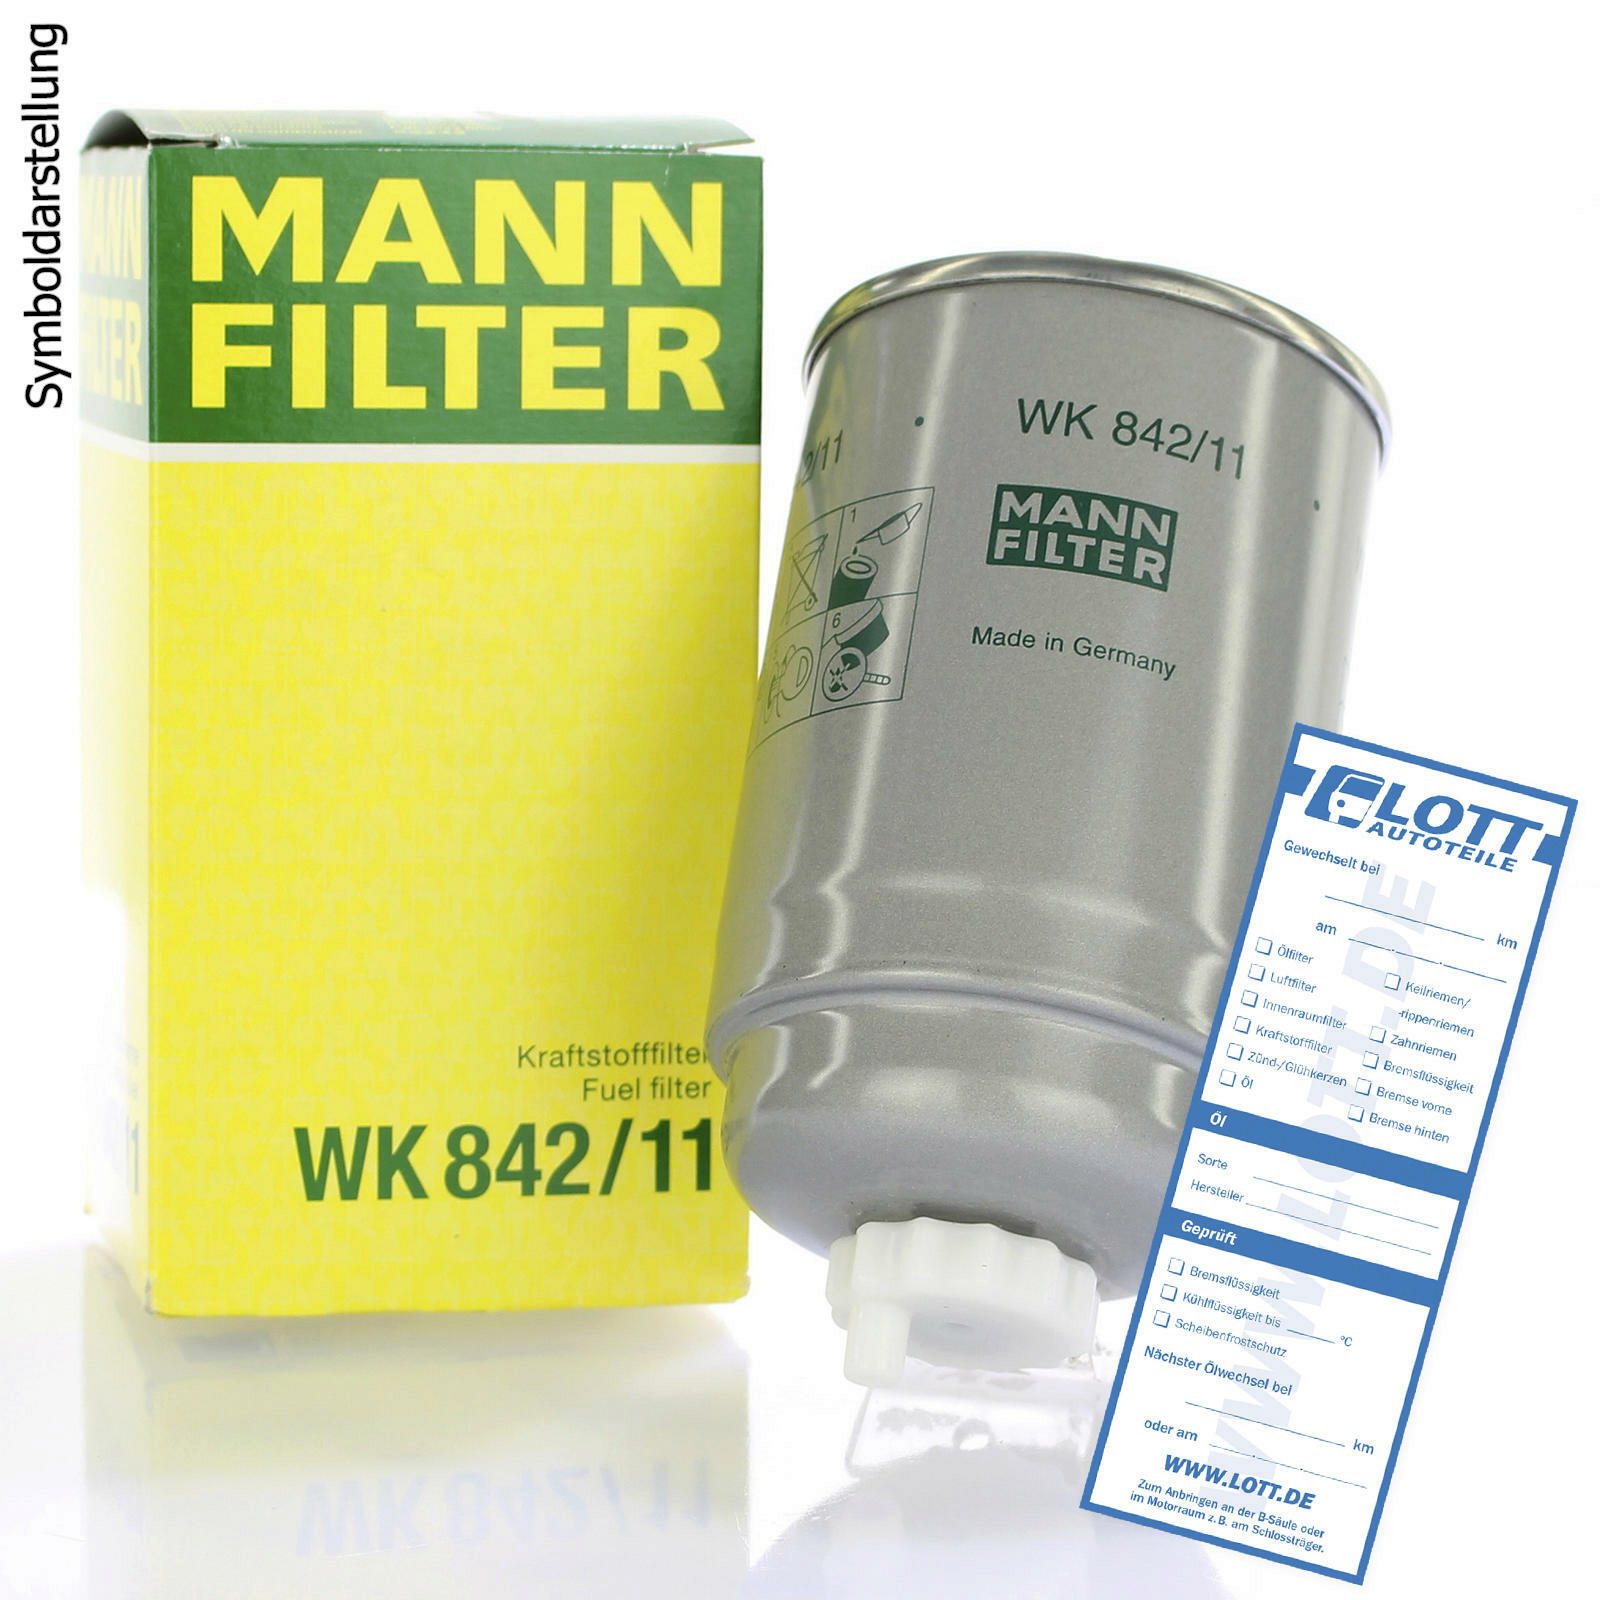 MANN-FILTER Kraftstofffilter